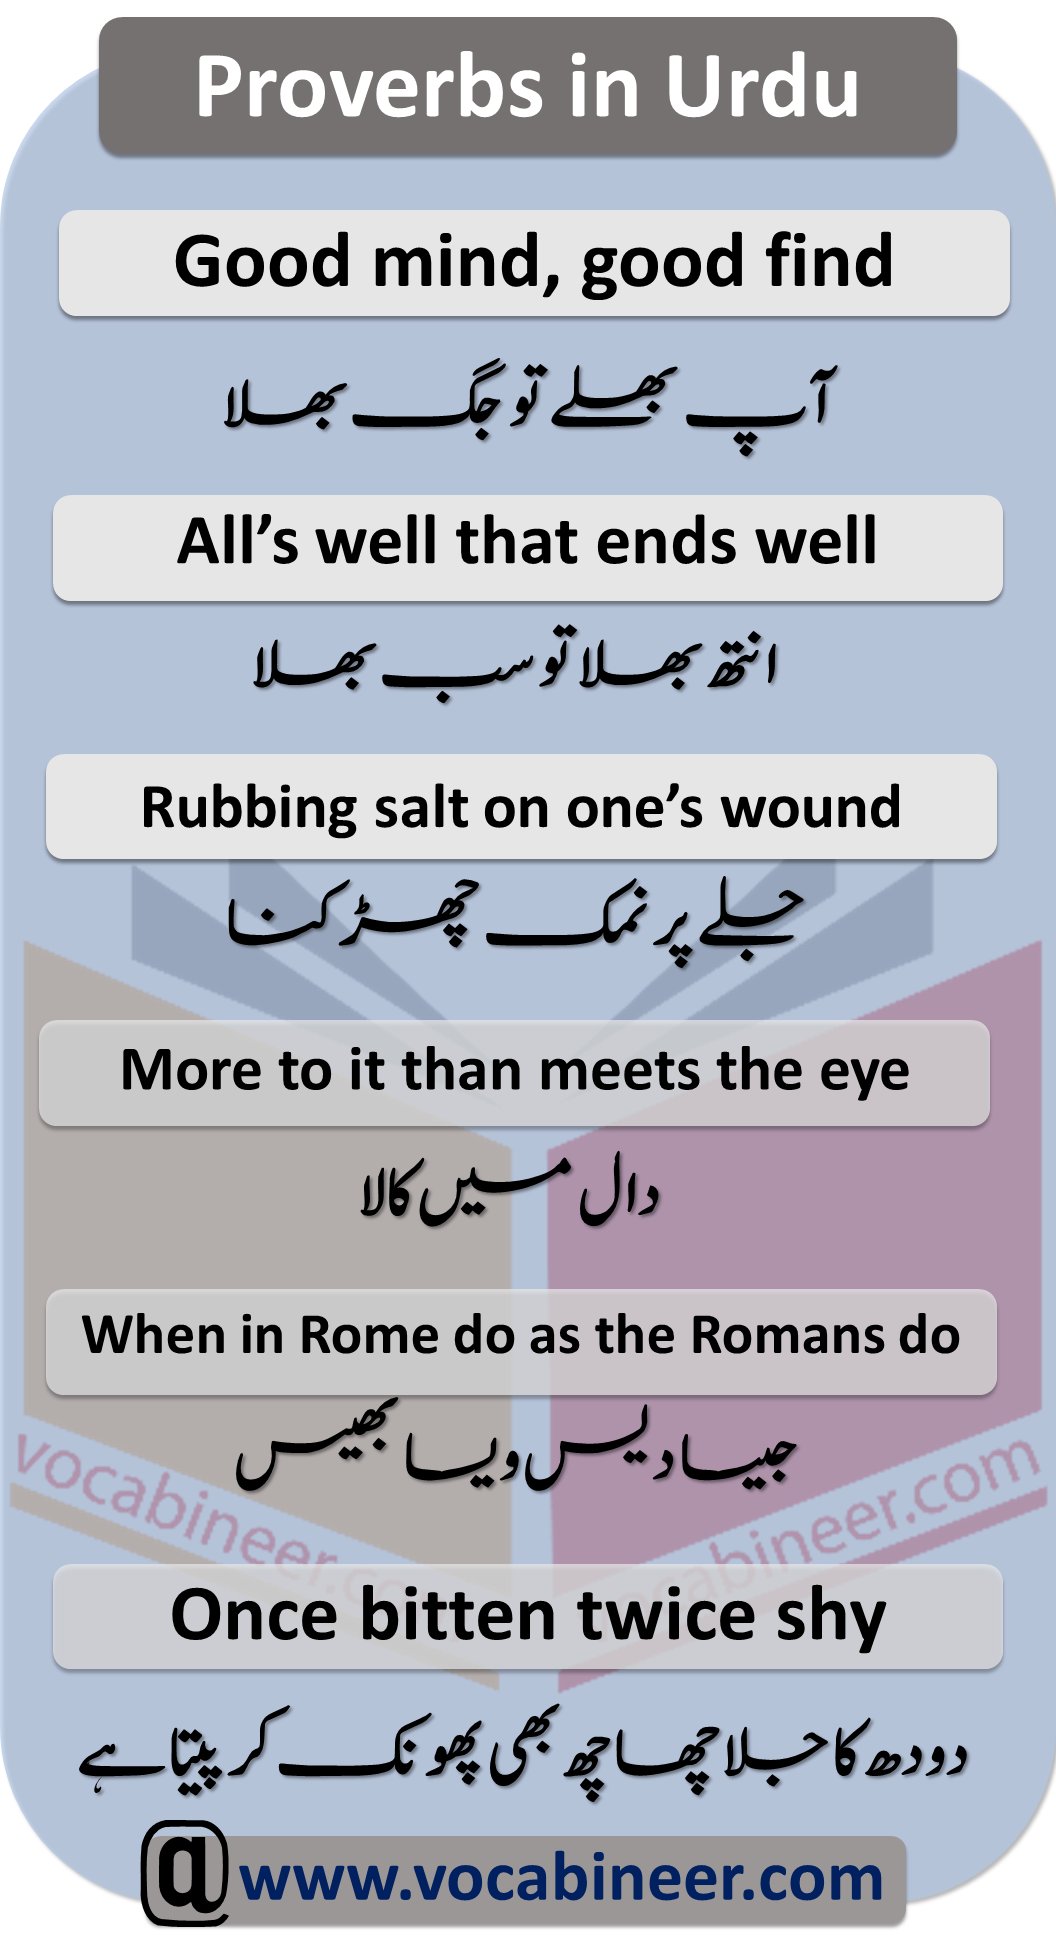 50 Proverbs Meaning In Urdu | Urdu to English Prov